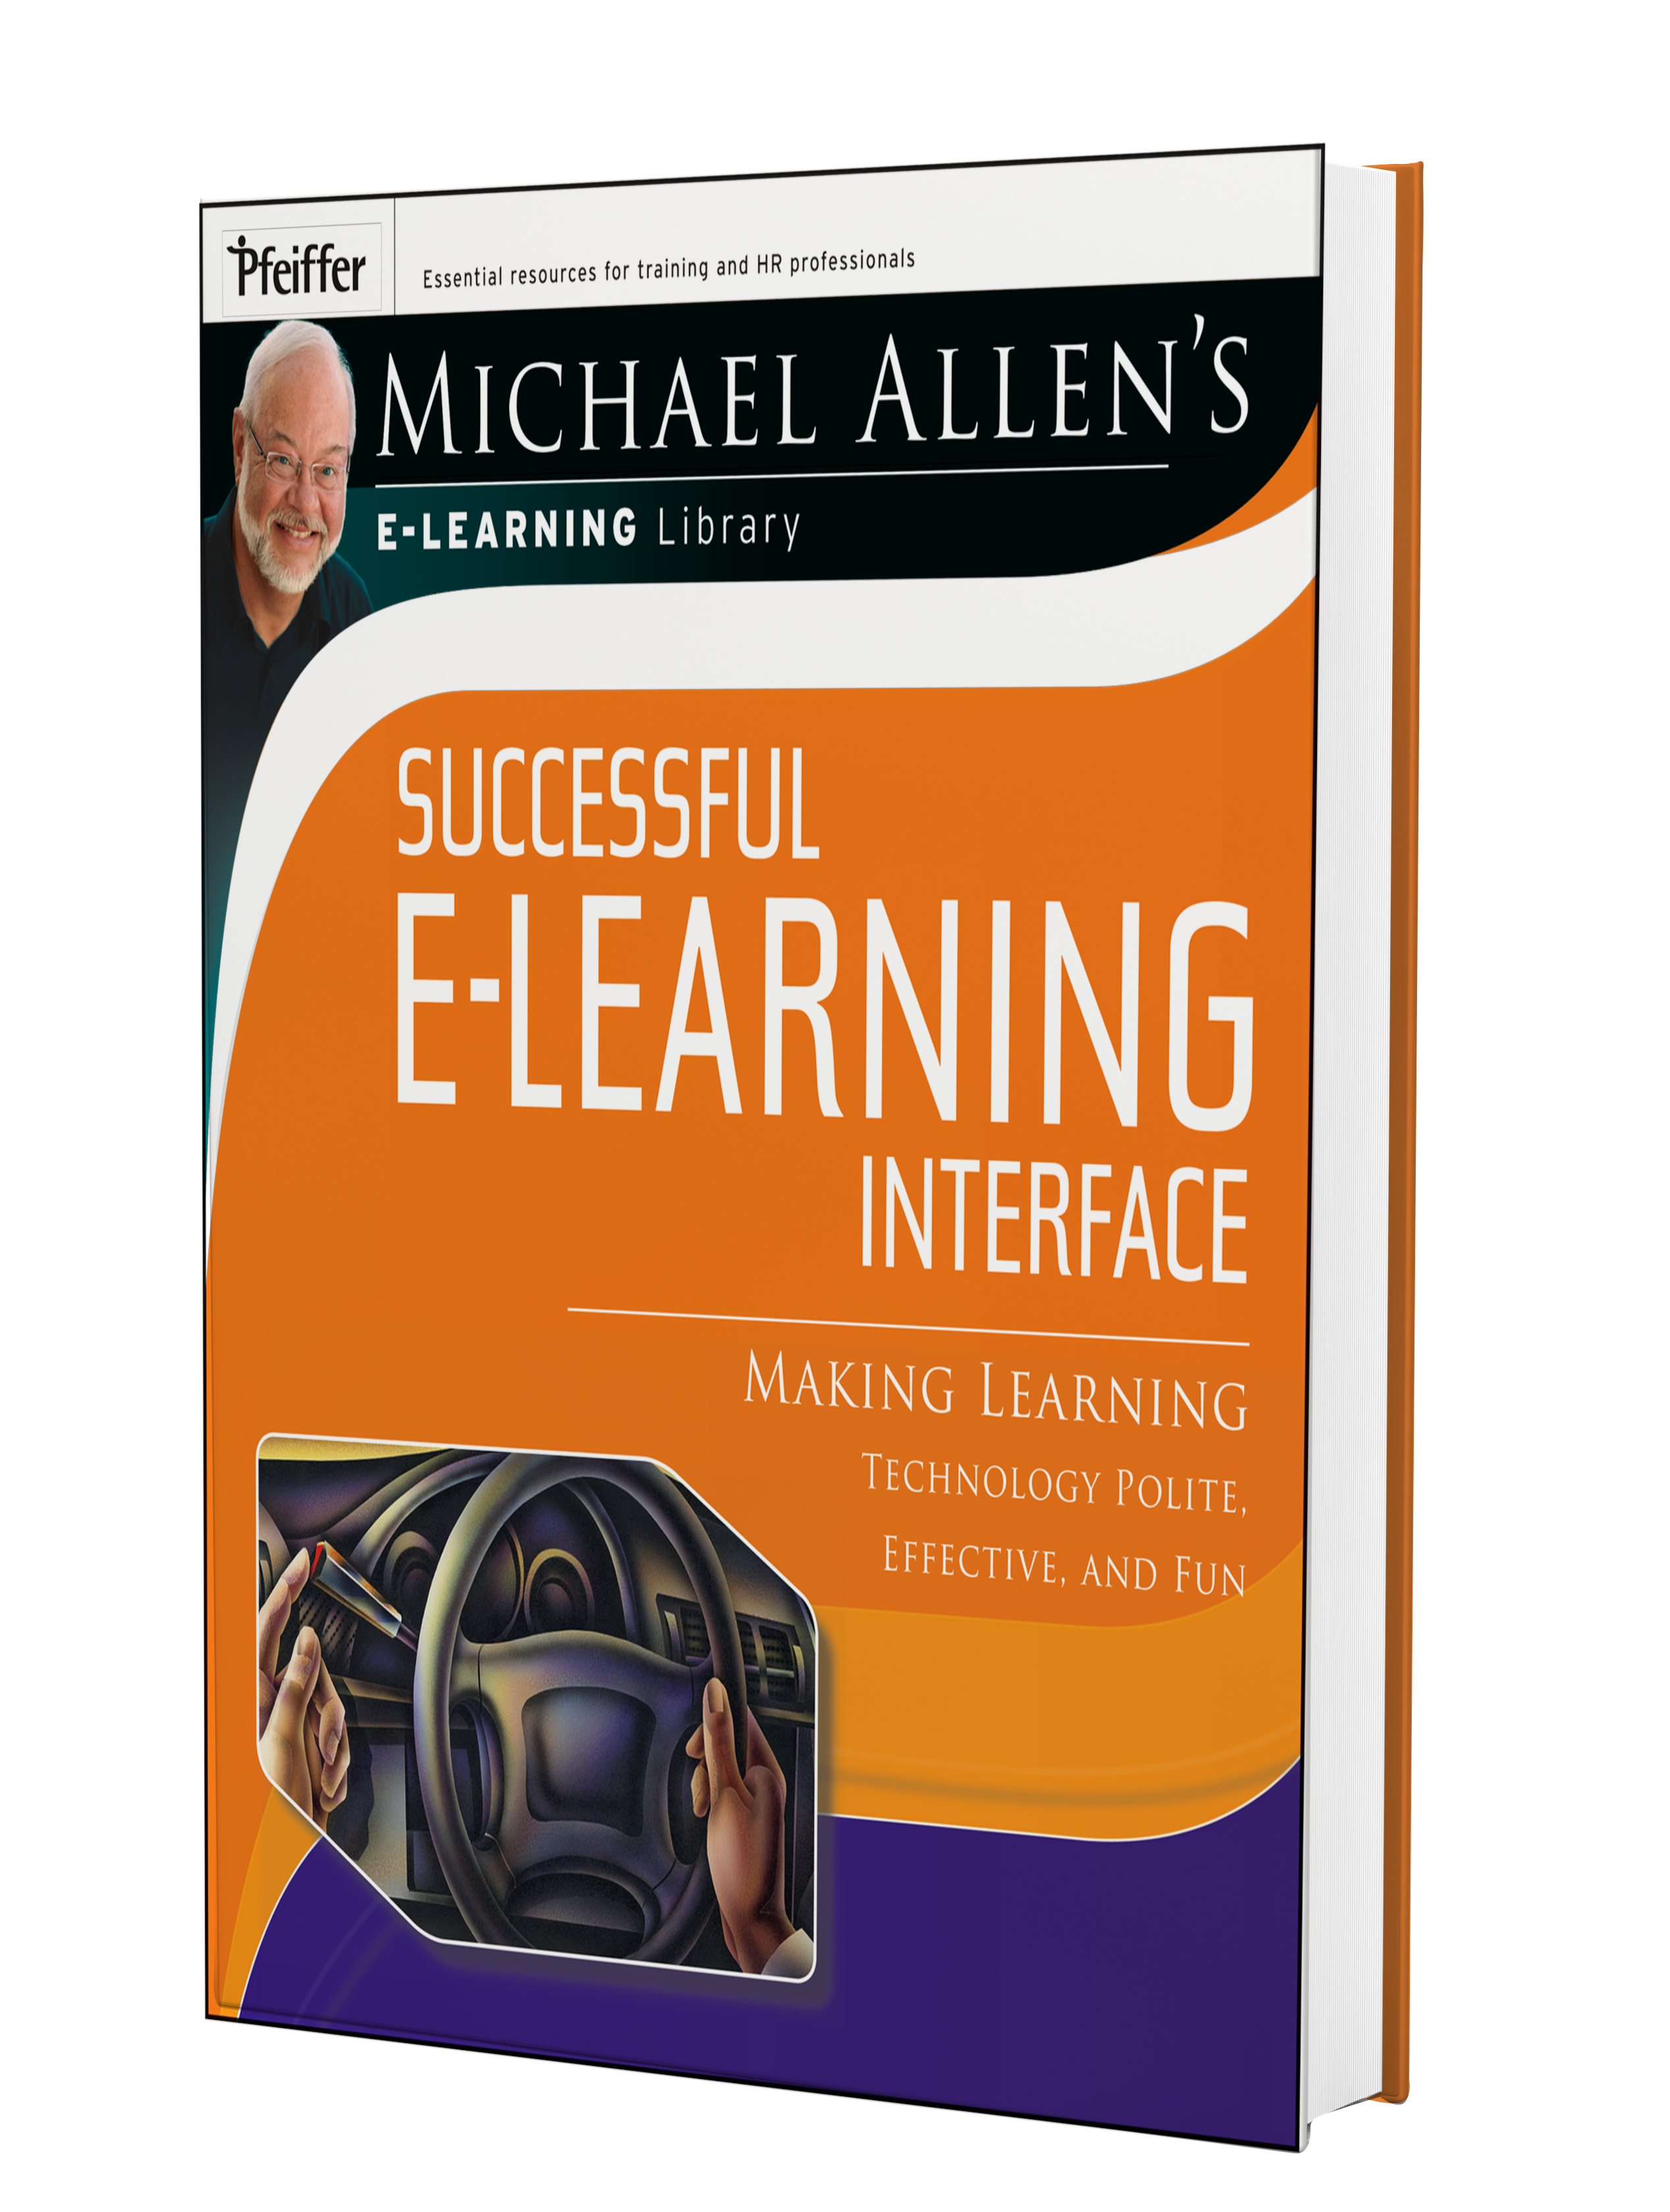 SuccessfuleLearningInterface